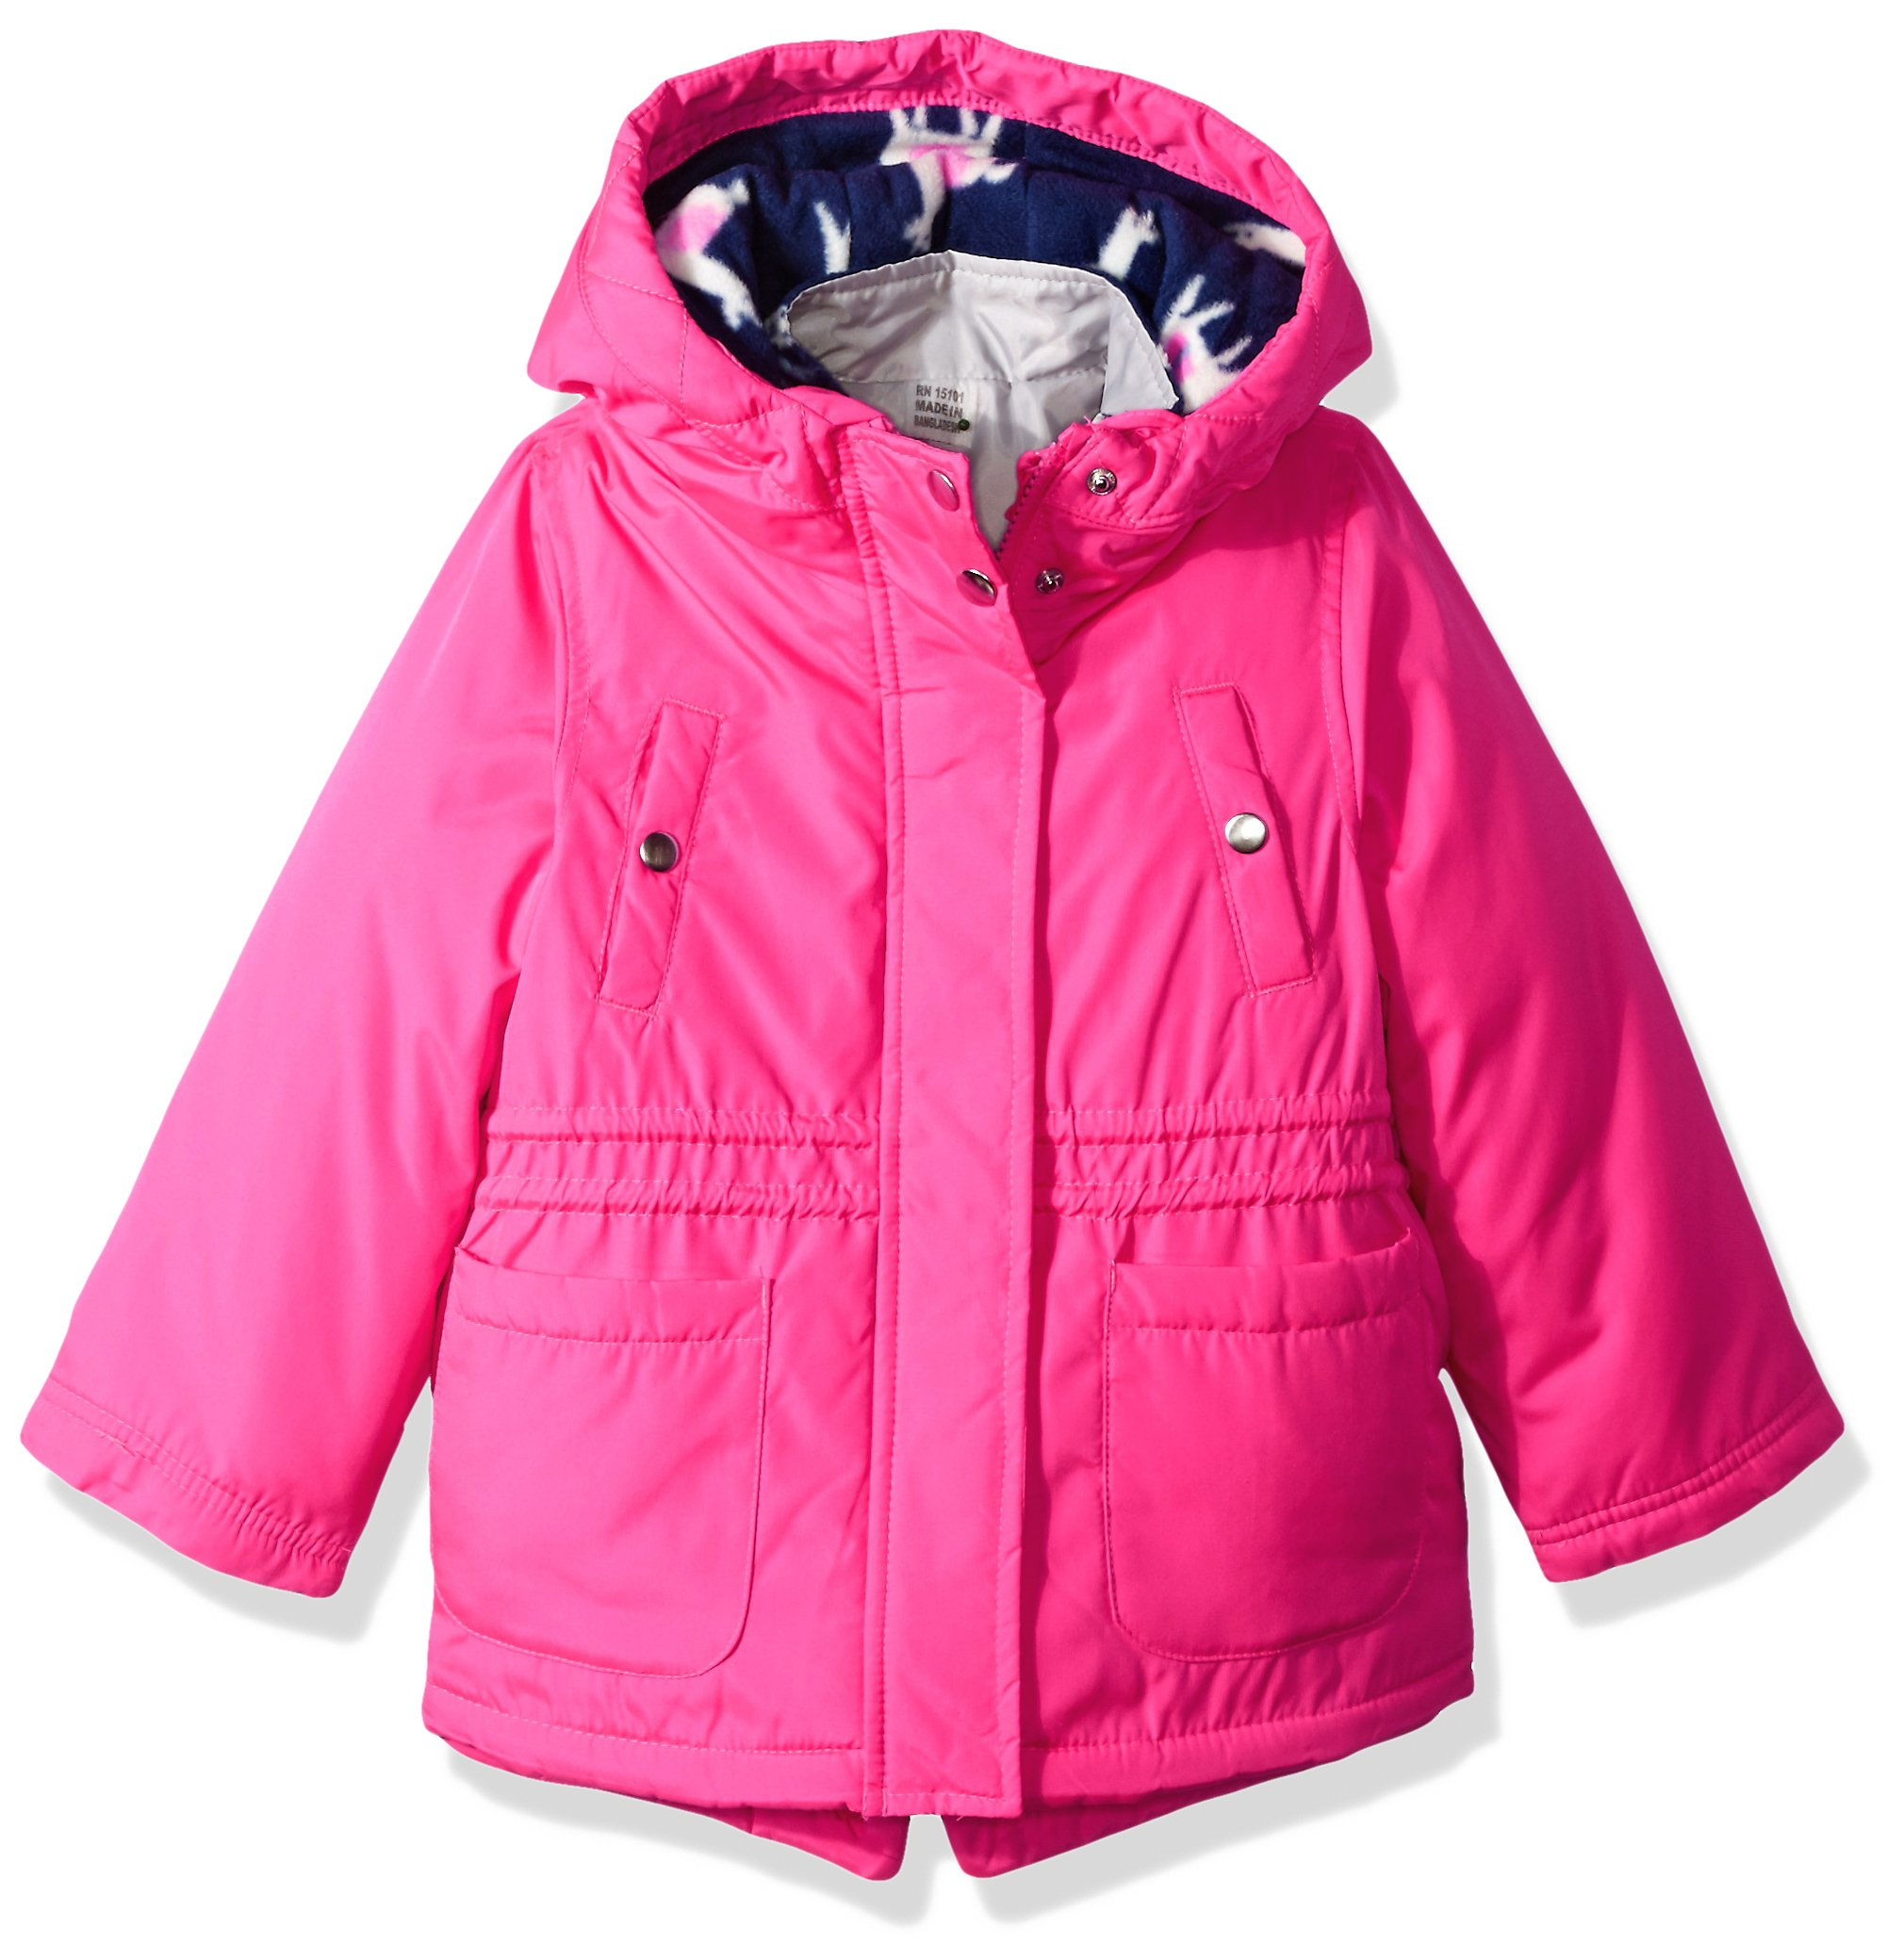 Carter's Little Girls' 4 in 1 Heavyweight Systems Jacket, Pink Llamas, 5/6